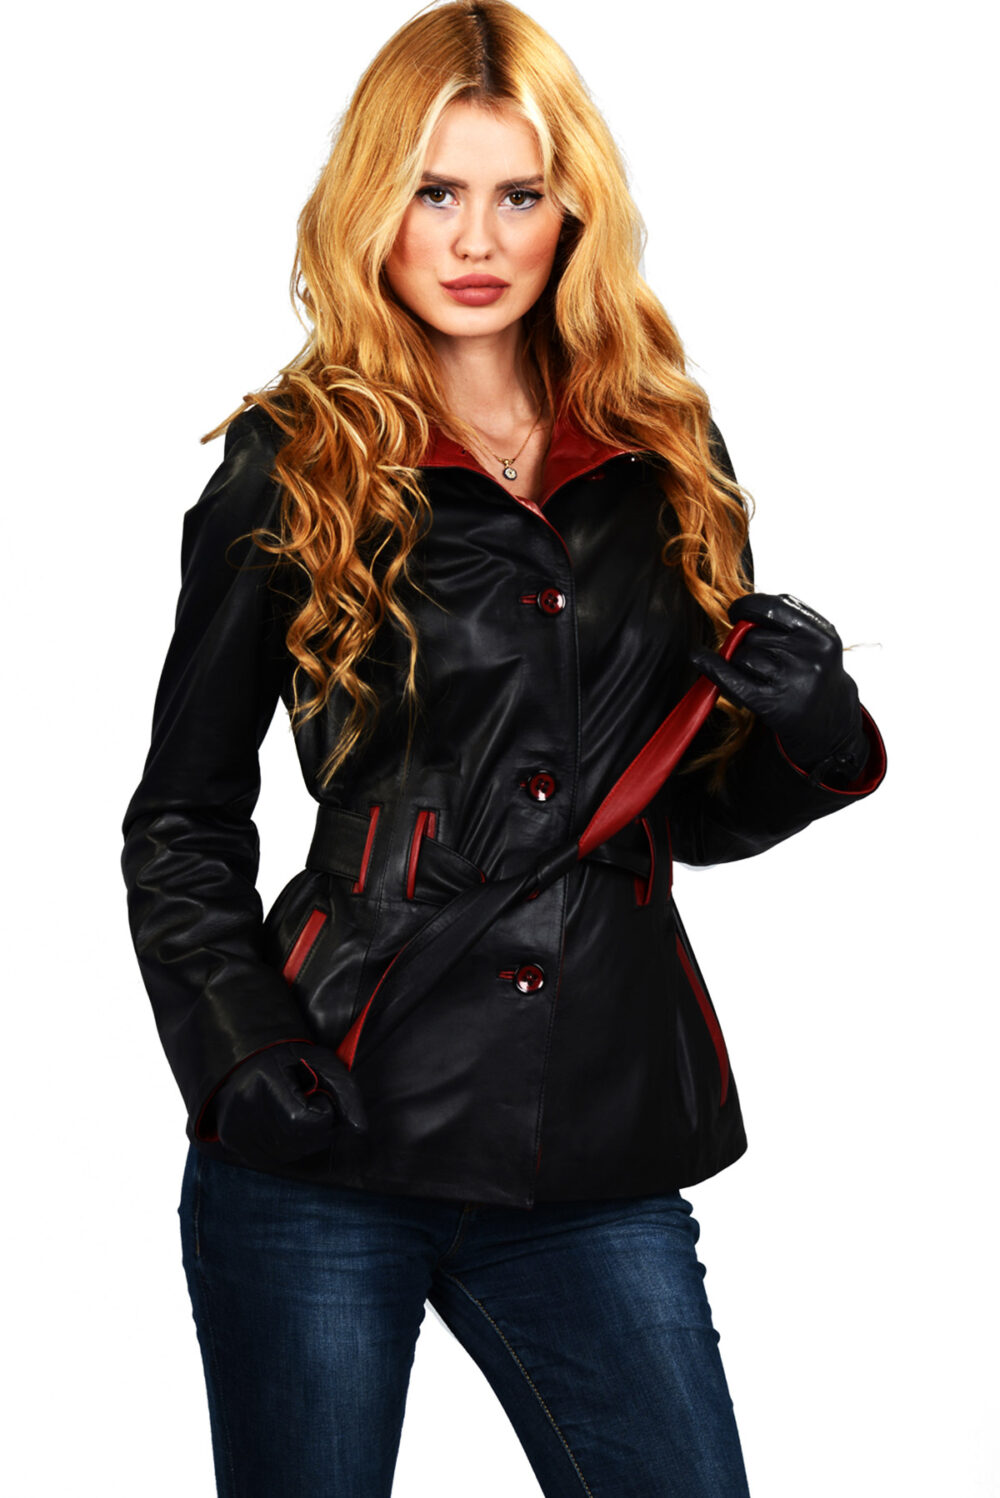 real leather jacket cost